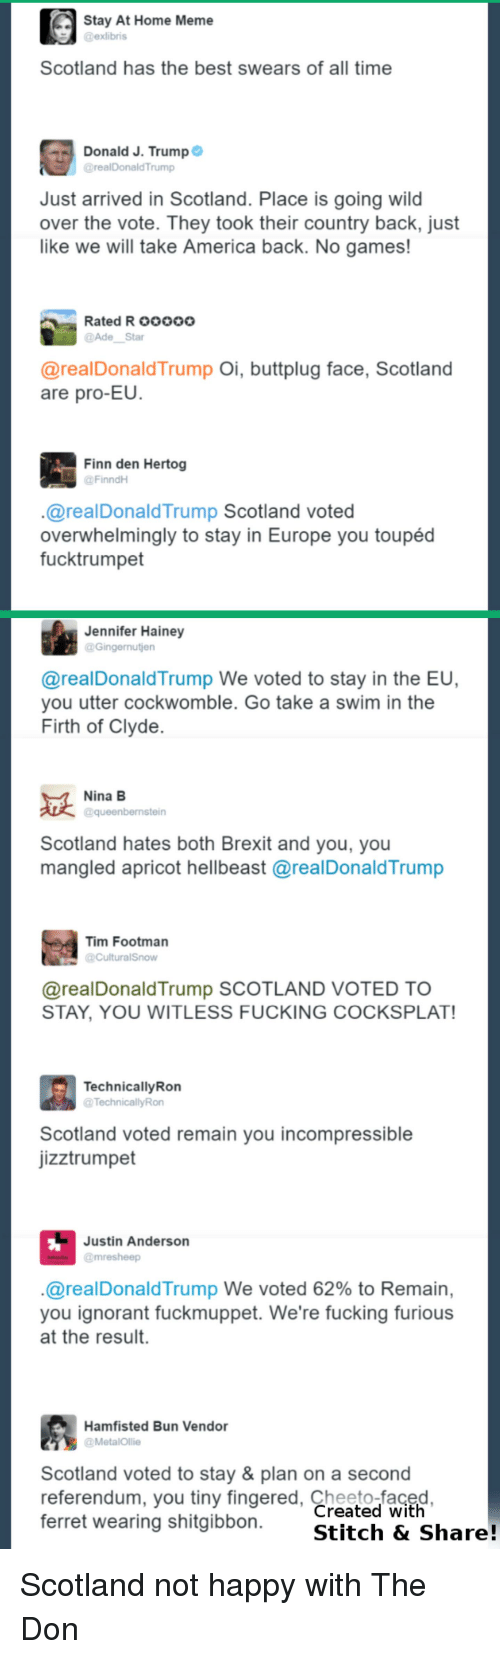 Shitgibbon: Stay At Home Meme  @exlibris  Scotland has the best swears of all time  Donald J. Trump  @realDonald'Trump  Just arrived in Scotland. Place is going wild  over the vote. They took their country back, just  like we will take America back. No games!  Rated Rooooo  Star  @real Donald Trump  Oi, buttplug face, Scotland  are pro-EU.  Finn den Hertog  FinndH  realDonald Trump Scotland voted  overwhelmingly to stay in Europe you toupéd  fucktrumpet  Jennifer Hainey  Gingernutien  @real Donald Trump We voted to stay in the EU,  you utter cockwomble. Go take a swim in the  Firth of Clyde  Nina B  aqueenbernstein  Scotland hates both Brexit and you, you  mangled apricot hellbeast arealDonaldTrump  Tim Footman  areal Donald Trump SCOTLAND VOTED TO  STAY, YOU WITLESS FUCKING COCKSPLAT!  Technically Ron  @TechnicallyRon  Scotland voted remain you incompressible  jizztrumpet  Justin Anderson  @mre sheep  areal Donald Trump We voted 62% to Remain,  you ignorant fuckmuppet. We're fucking furious  at the result.  Hamfisted Bun Vendor  a MetalOllie  Scotland voted to stay & plan on a second  referendum, you tiny fingered, Created with  ferret wearing shitgibbon  Stitch & Share! Scotland not happy with The Don